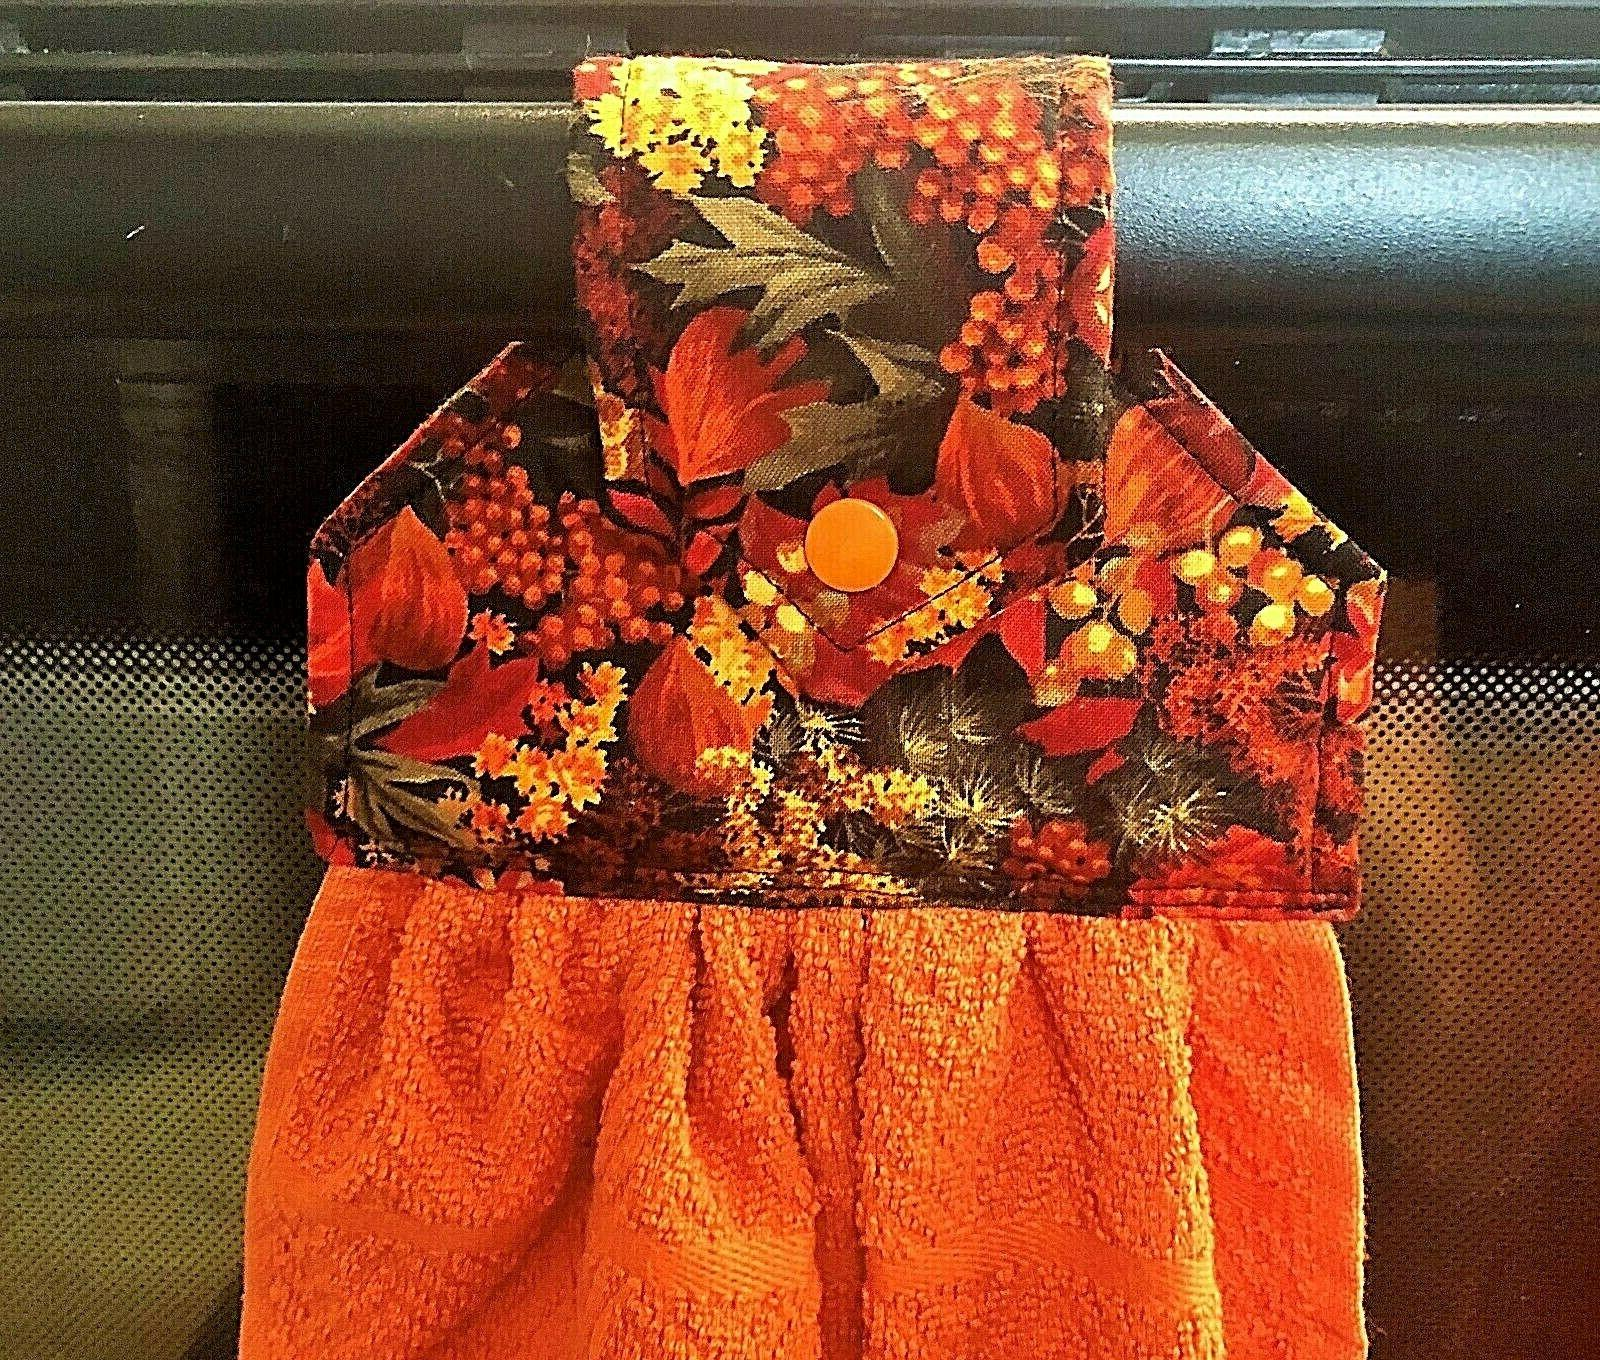 harvest autumn fall theme hanging kitchen towels